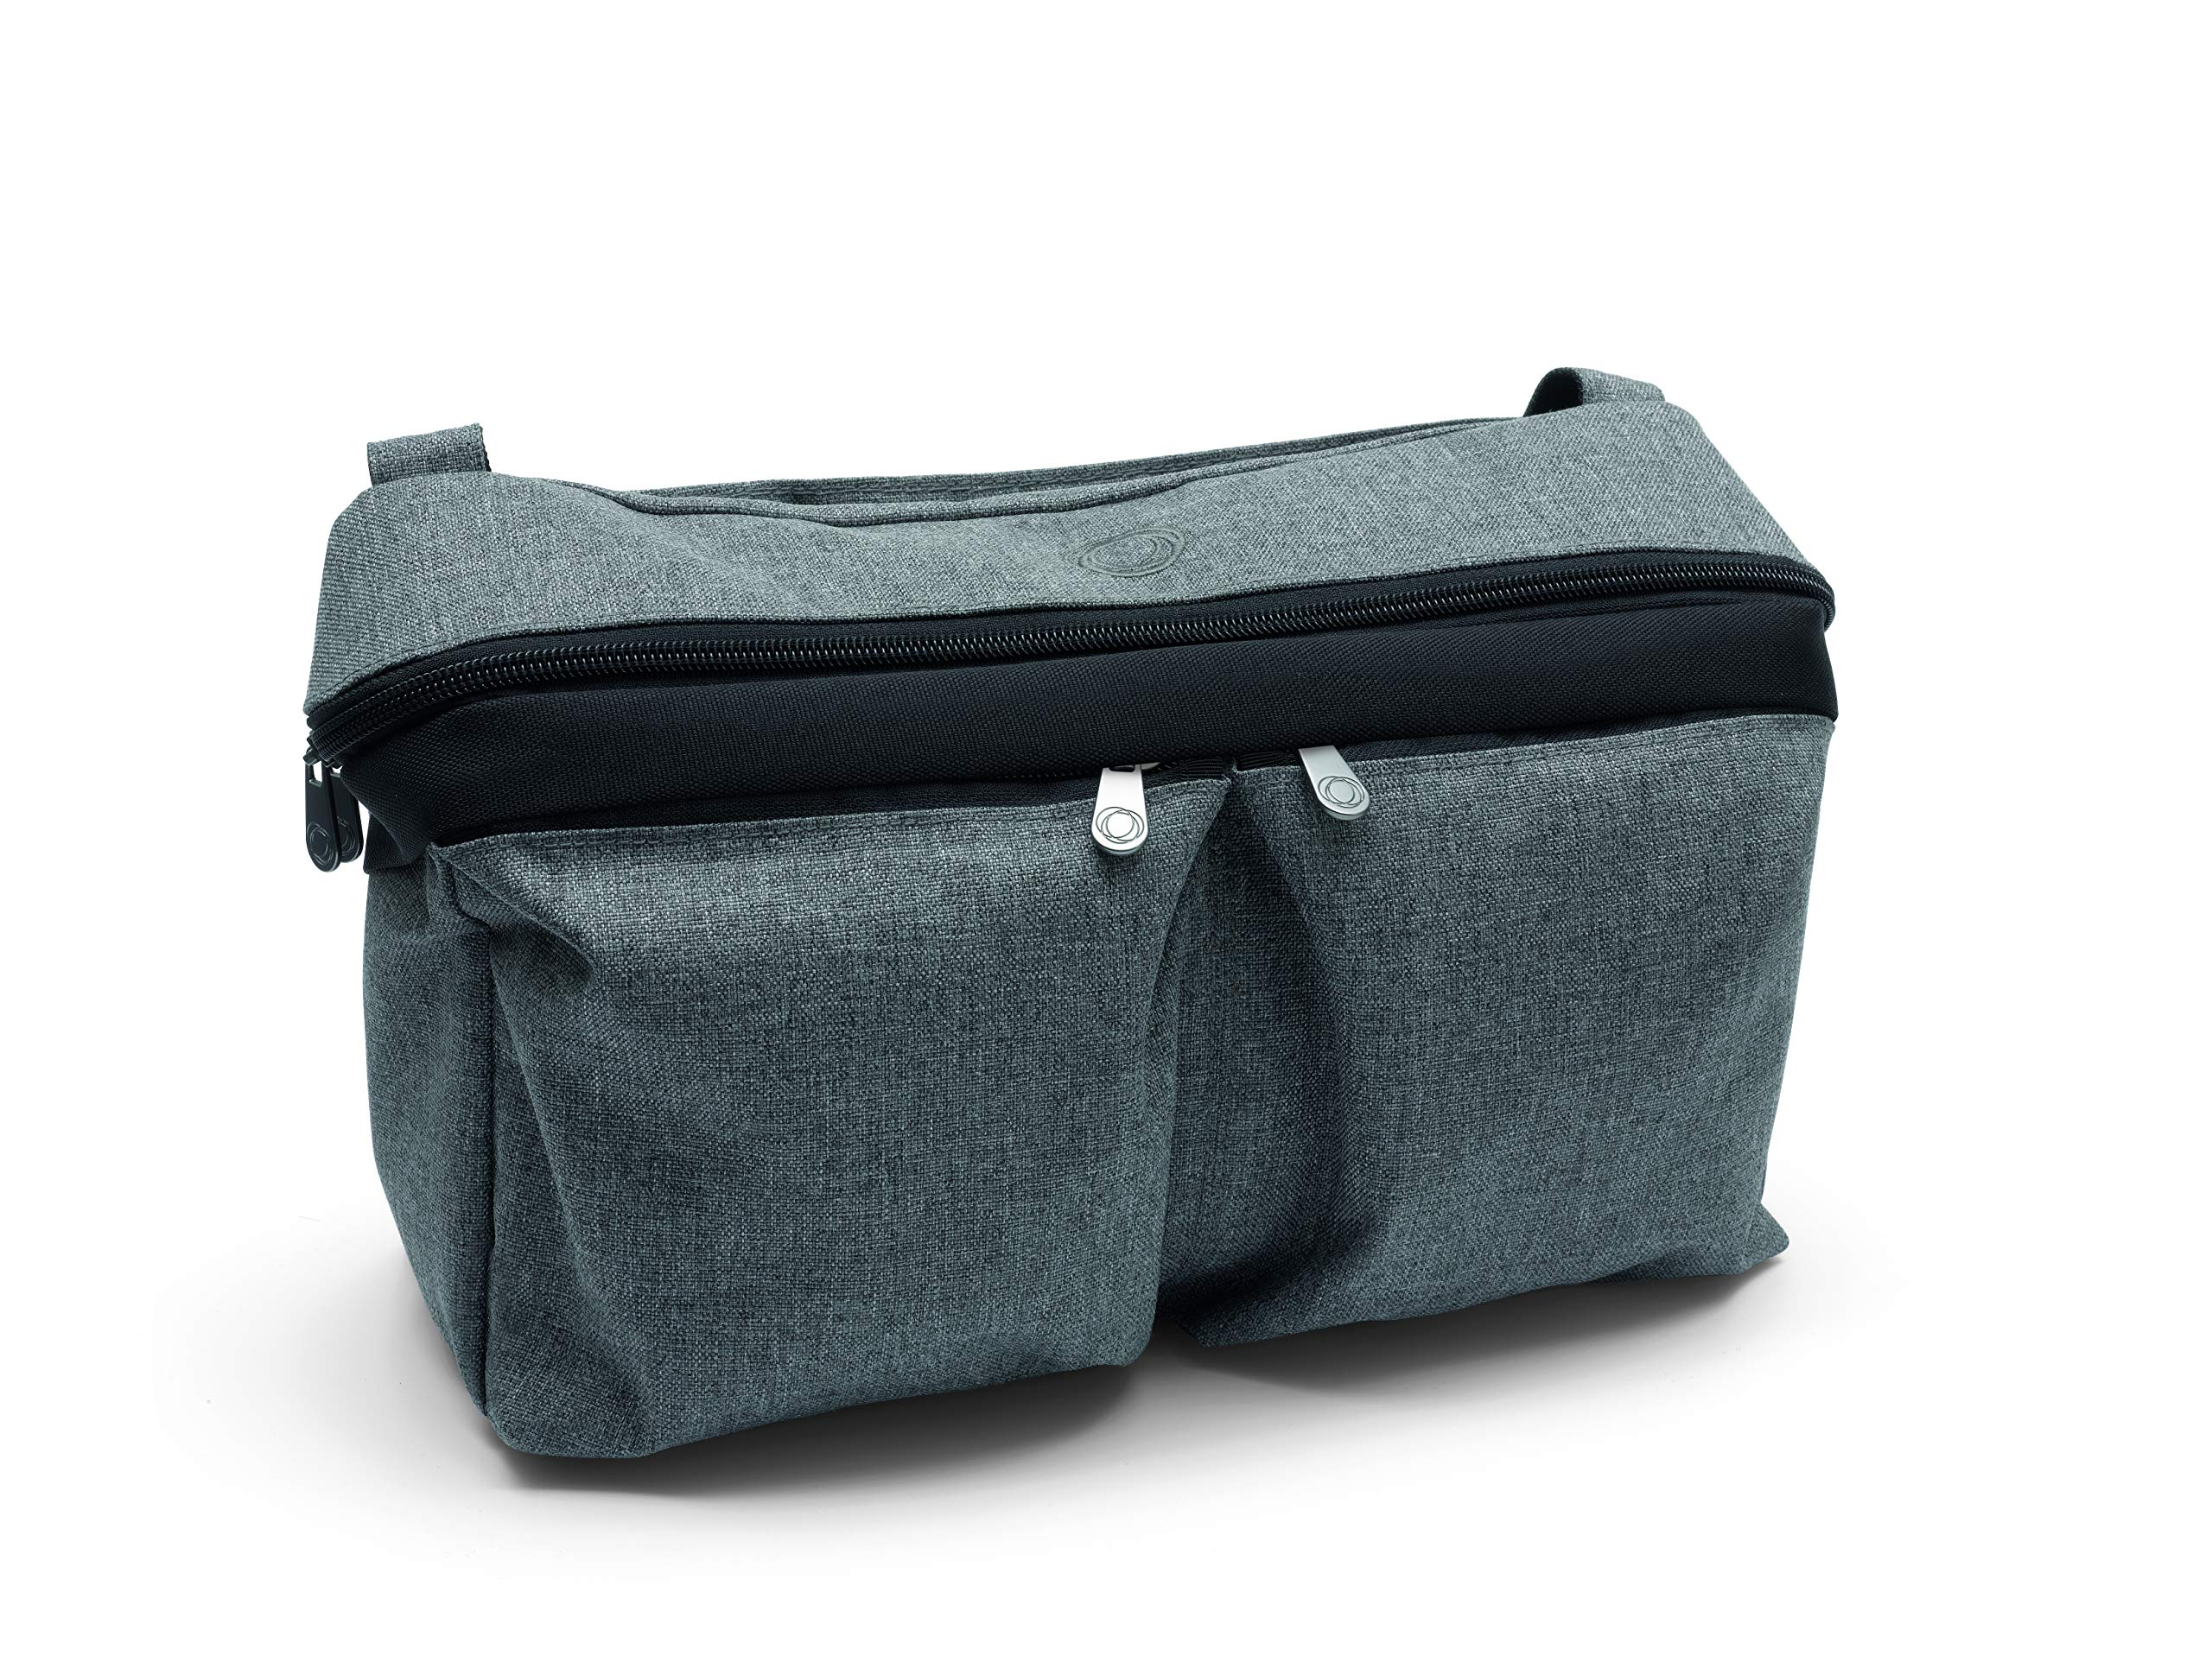 Bugaboo Stroller Organizer, Grey Mélange - Compatible with Any Stroller - Attaches to the Handlebar or Behind the Seat, Converts into a Diaper Bag Tote